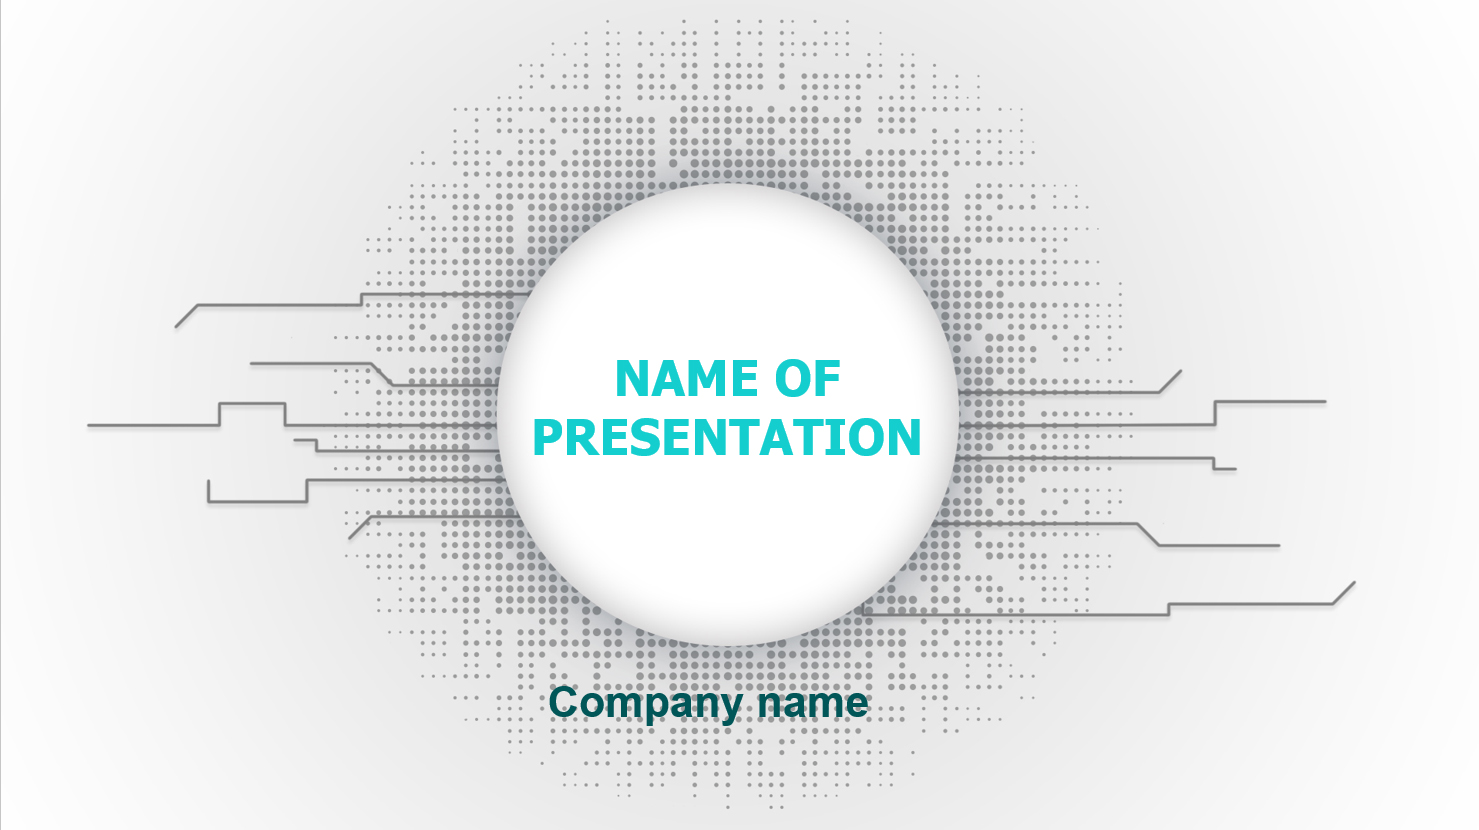 free microsoft powerpoint templates and backgrounds for presentations